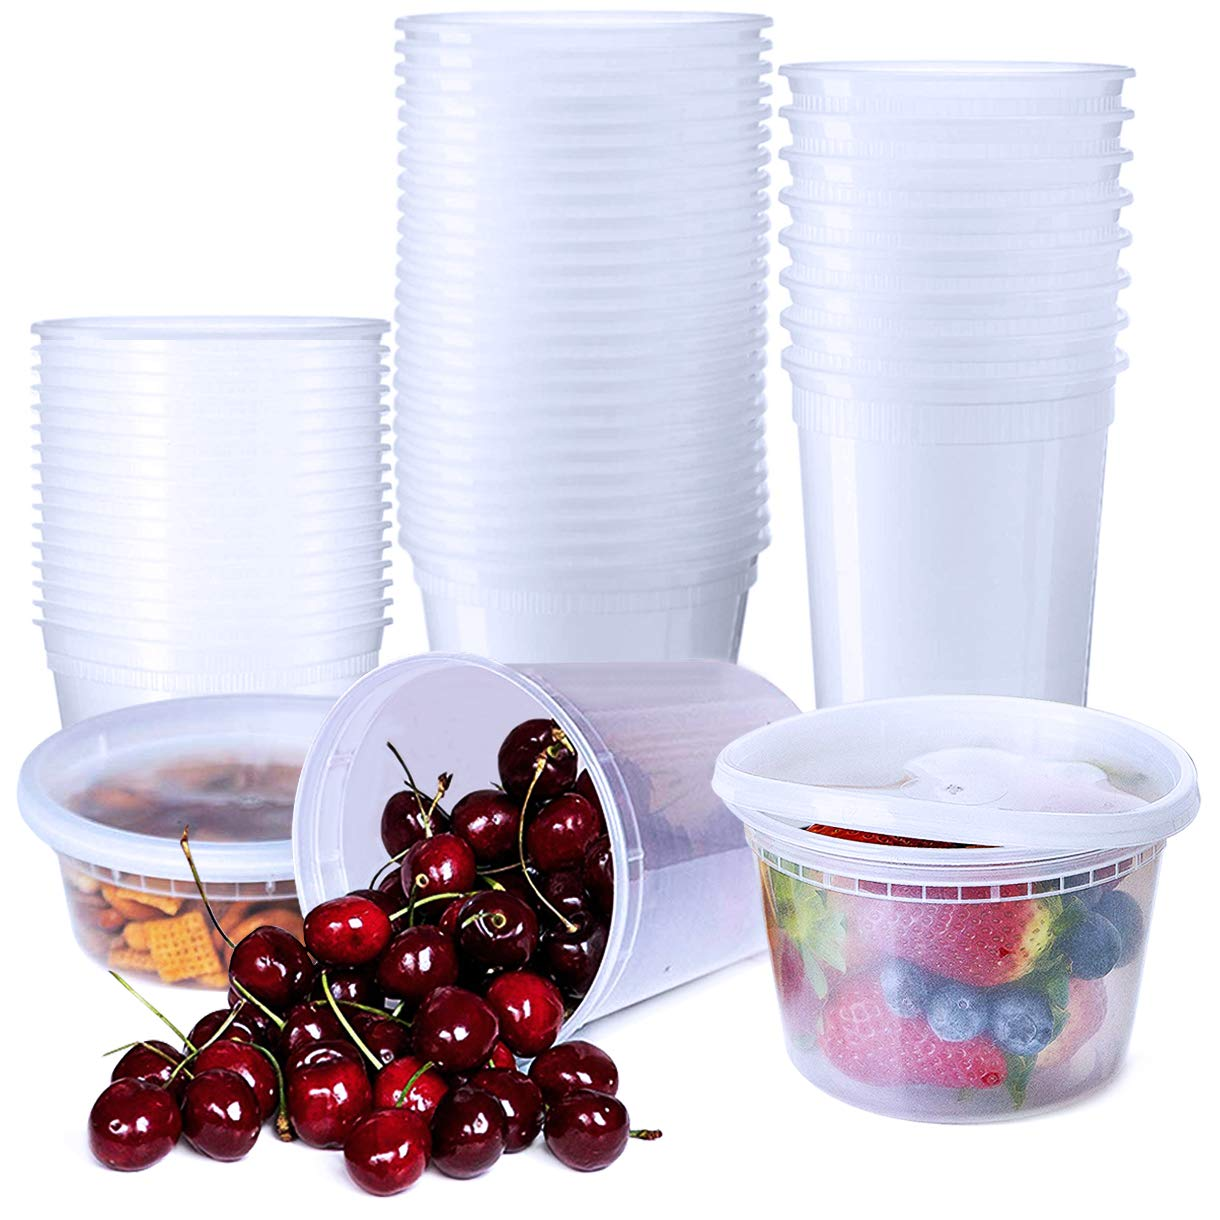 96 Pieces Food Storage Containers with Airtight Lids 8oz 16oz 32oz Plastic Restaurant Deli Cups Meal Prep Containers Freezer Containers by Hapree